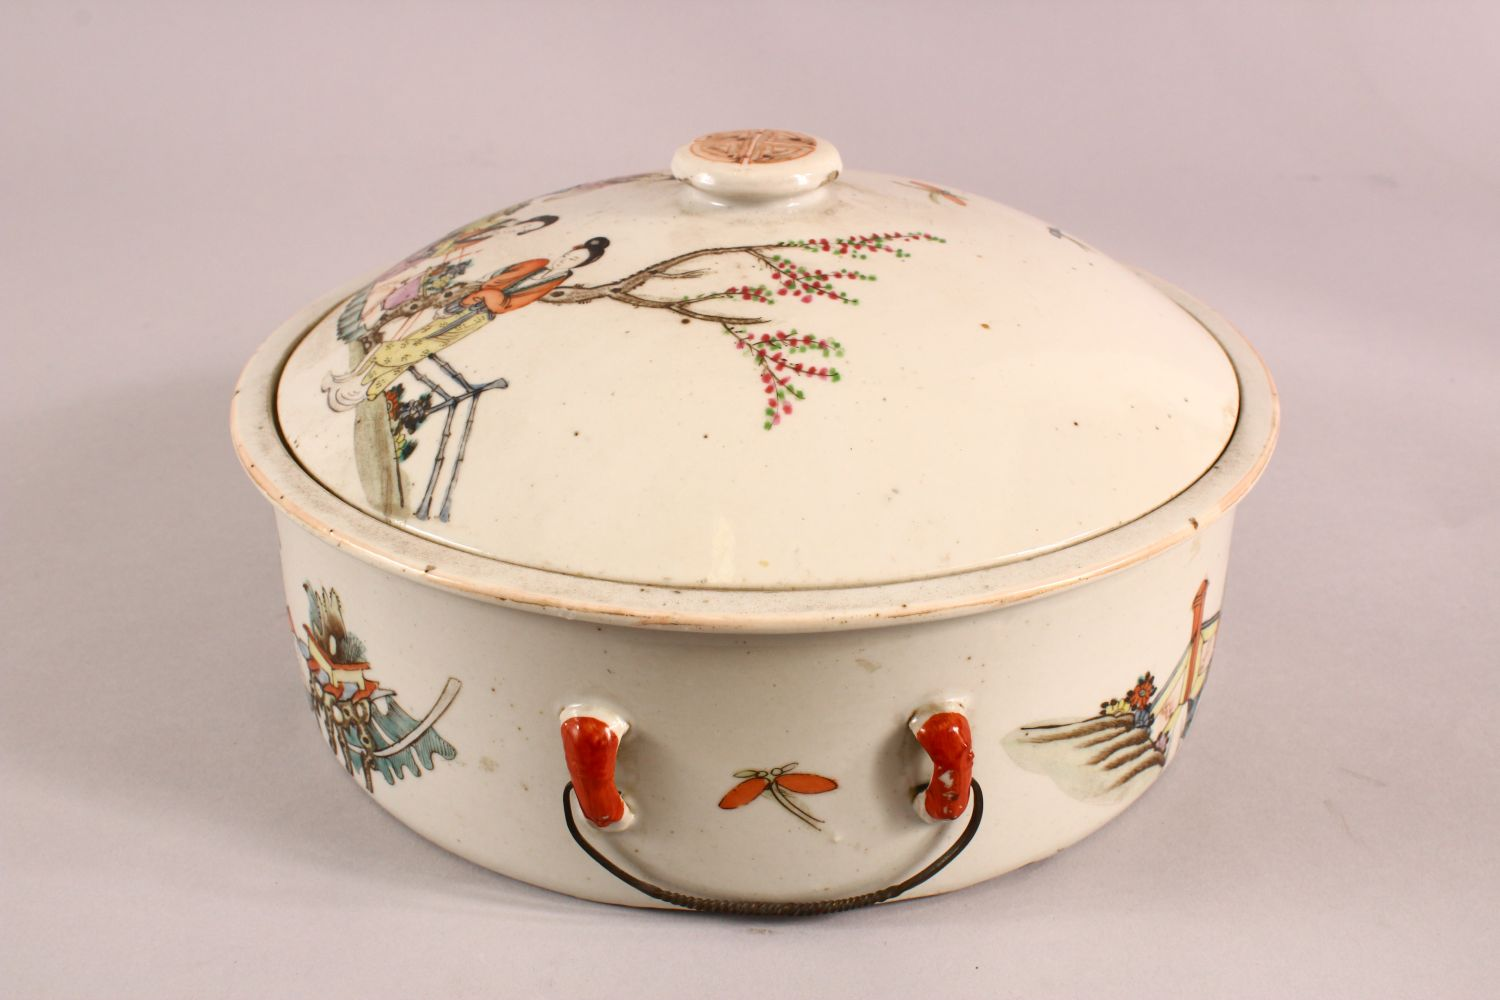 A 19TH CENTURY CHINESE FAMILLE ROSE PORCELAIN BOWL & COVER, with decoration of figures in - Image 4 of 6